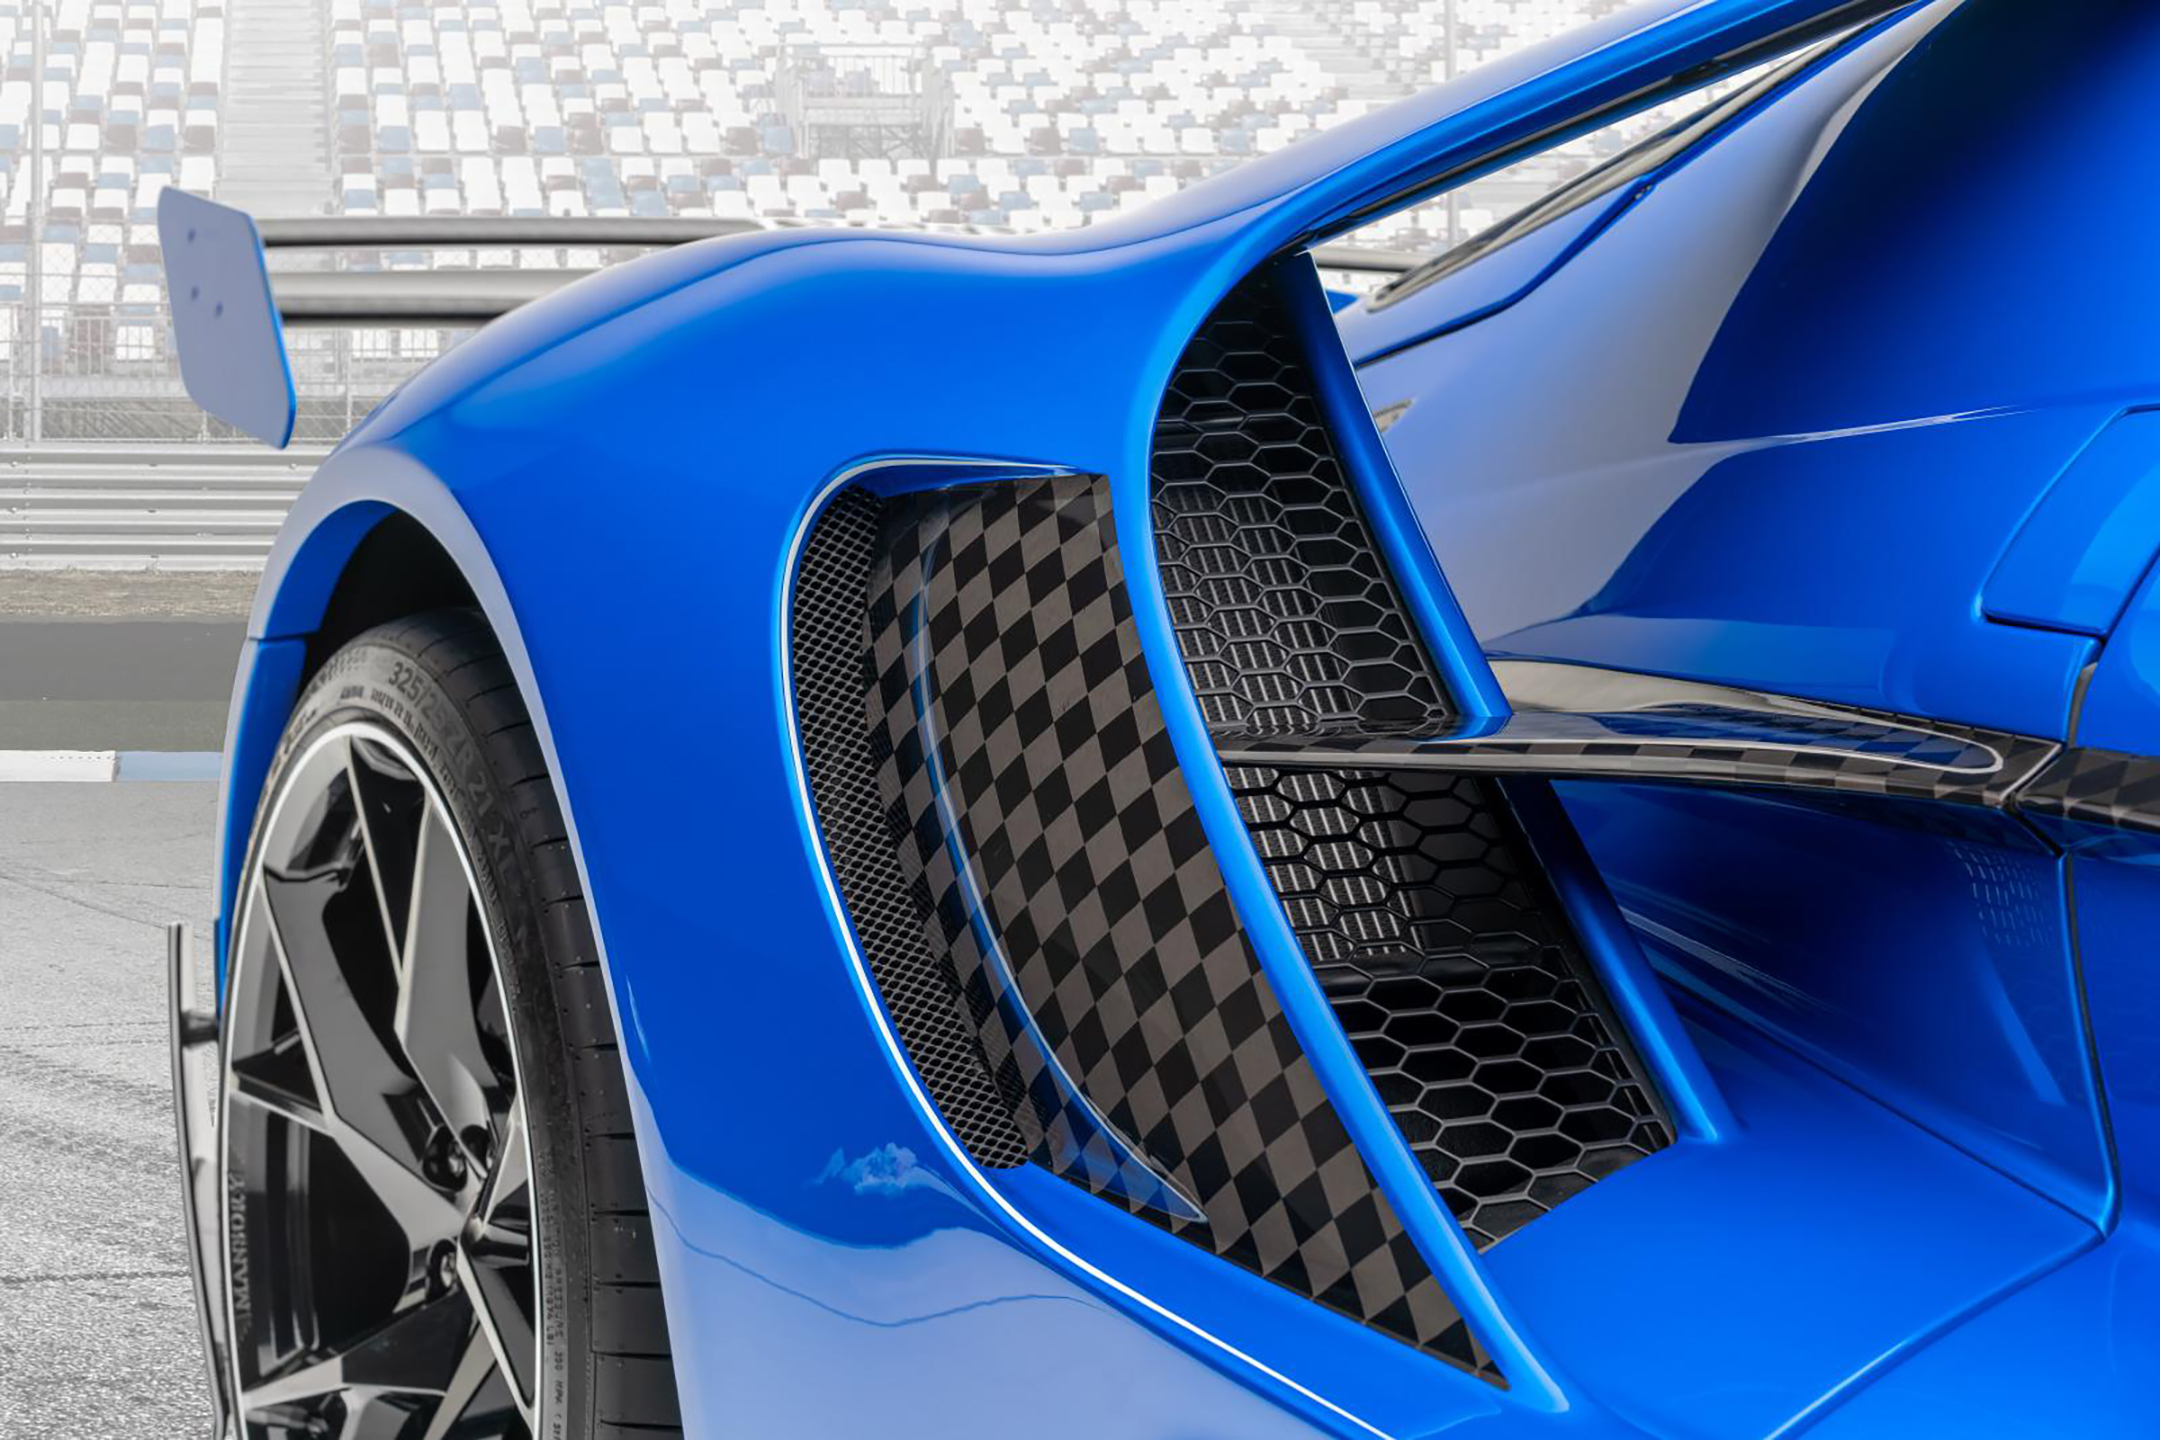 Le MANSORY - Ford GT custom - 2020 - rear side-view